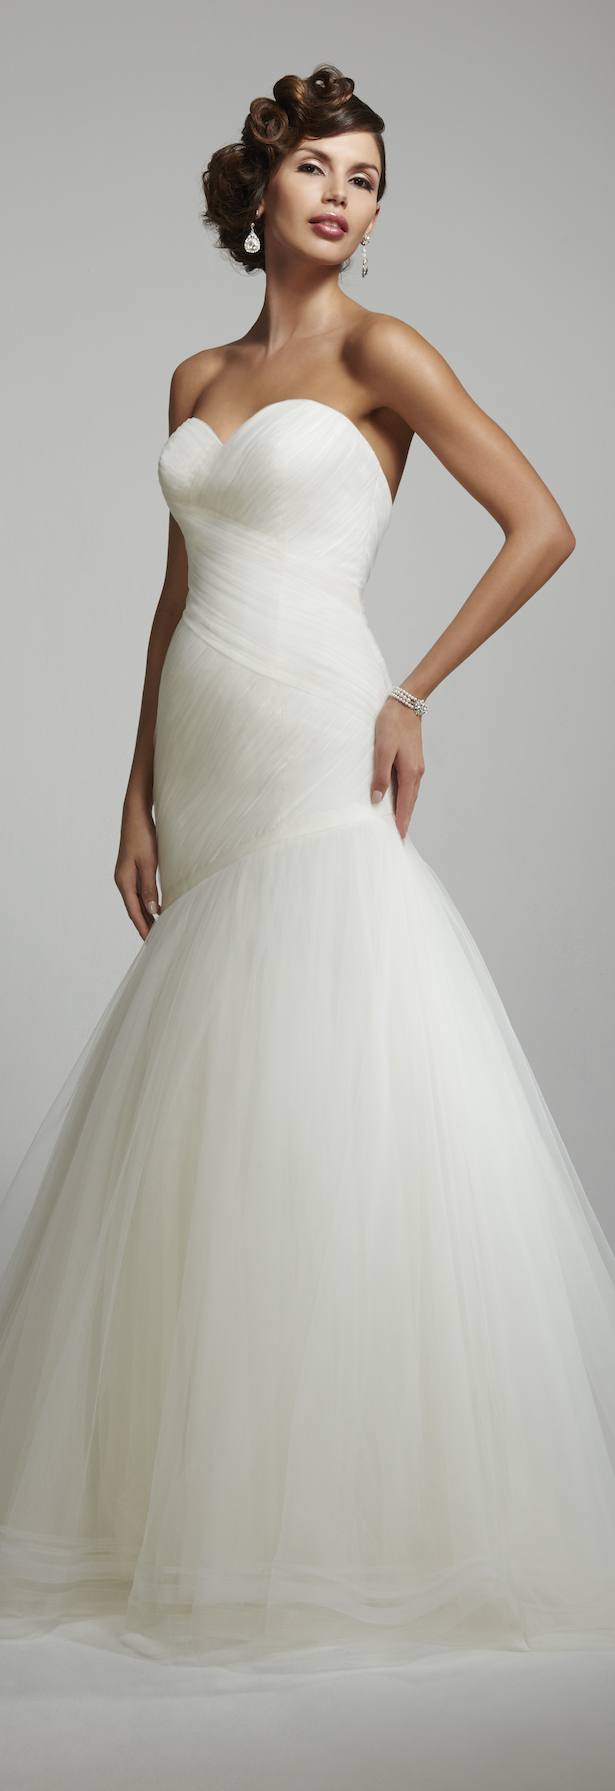 Matty 2016 by Matthew Christopher Bridal Collection - Aspen Wedding Dress